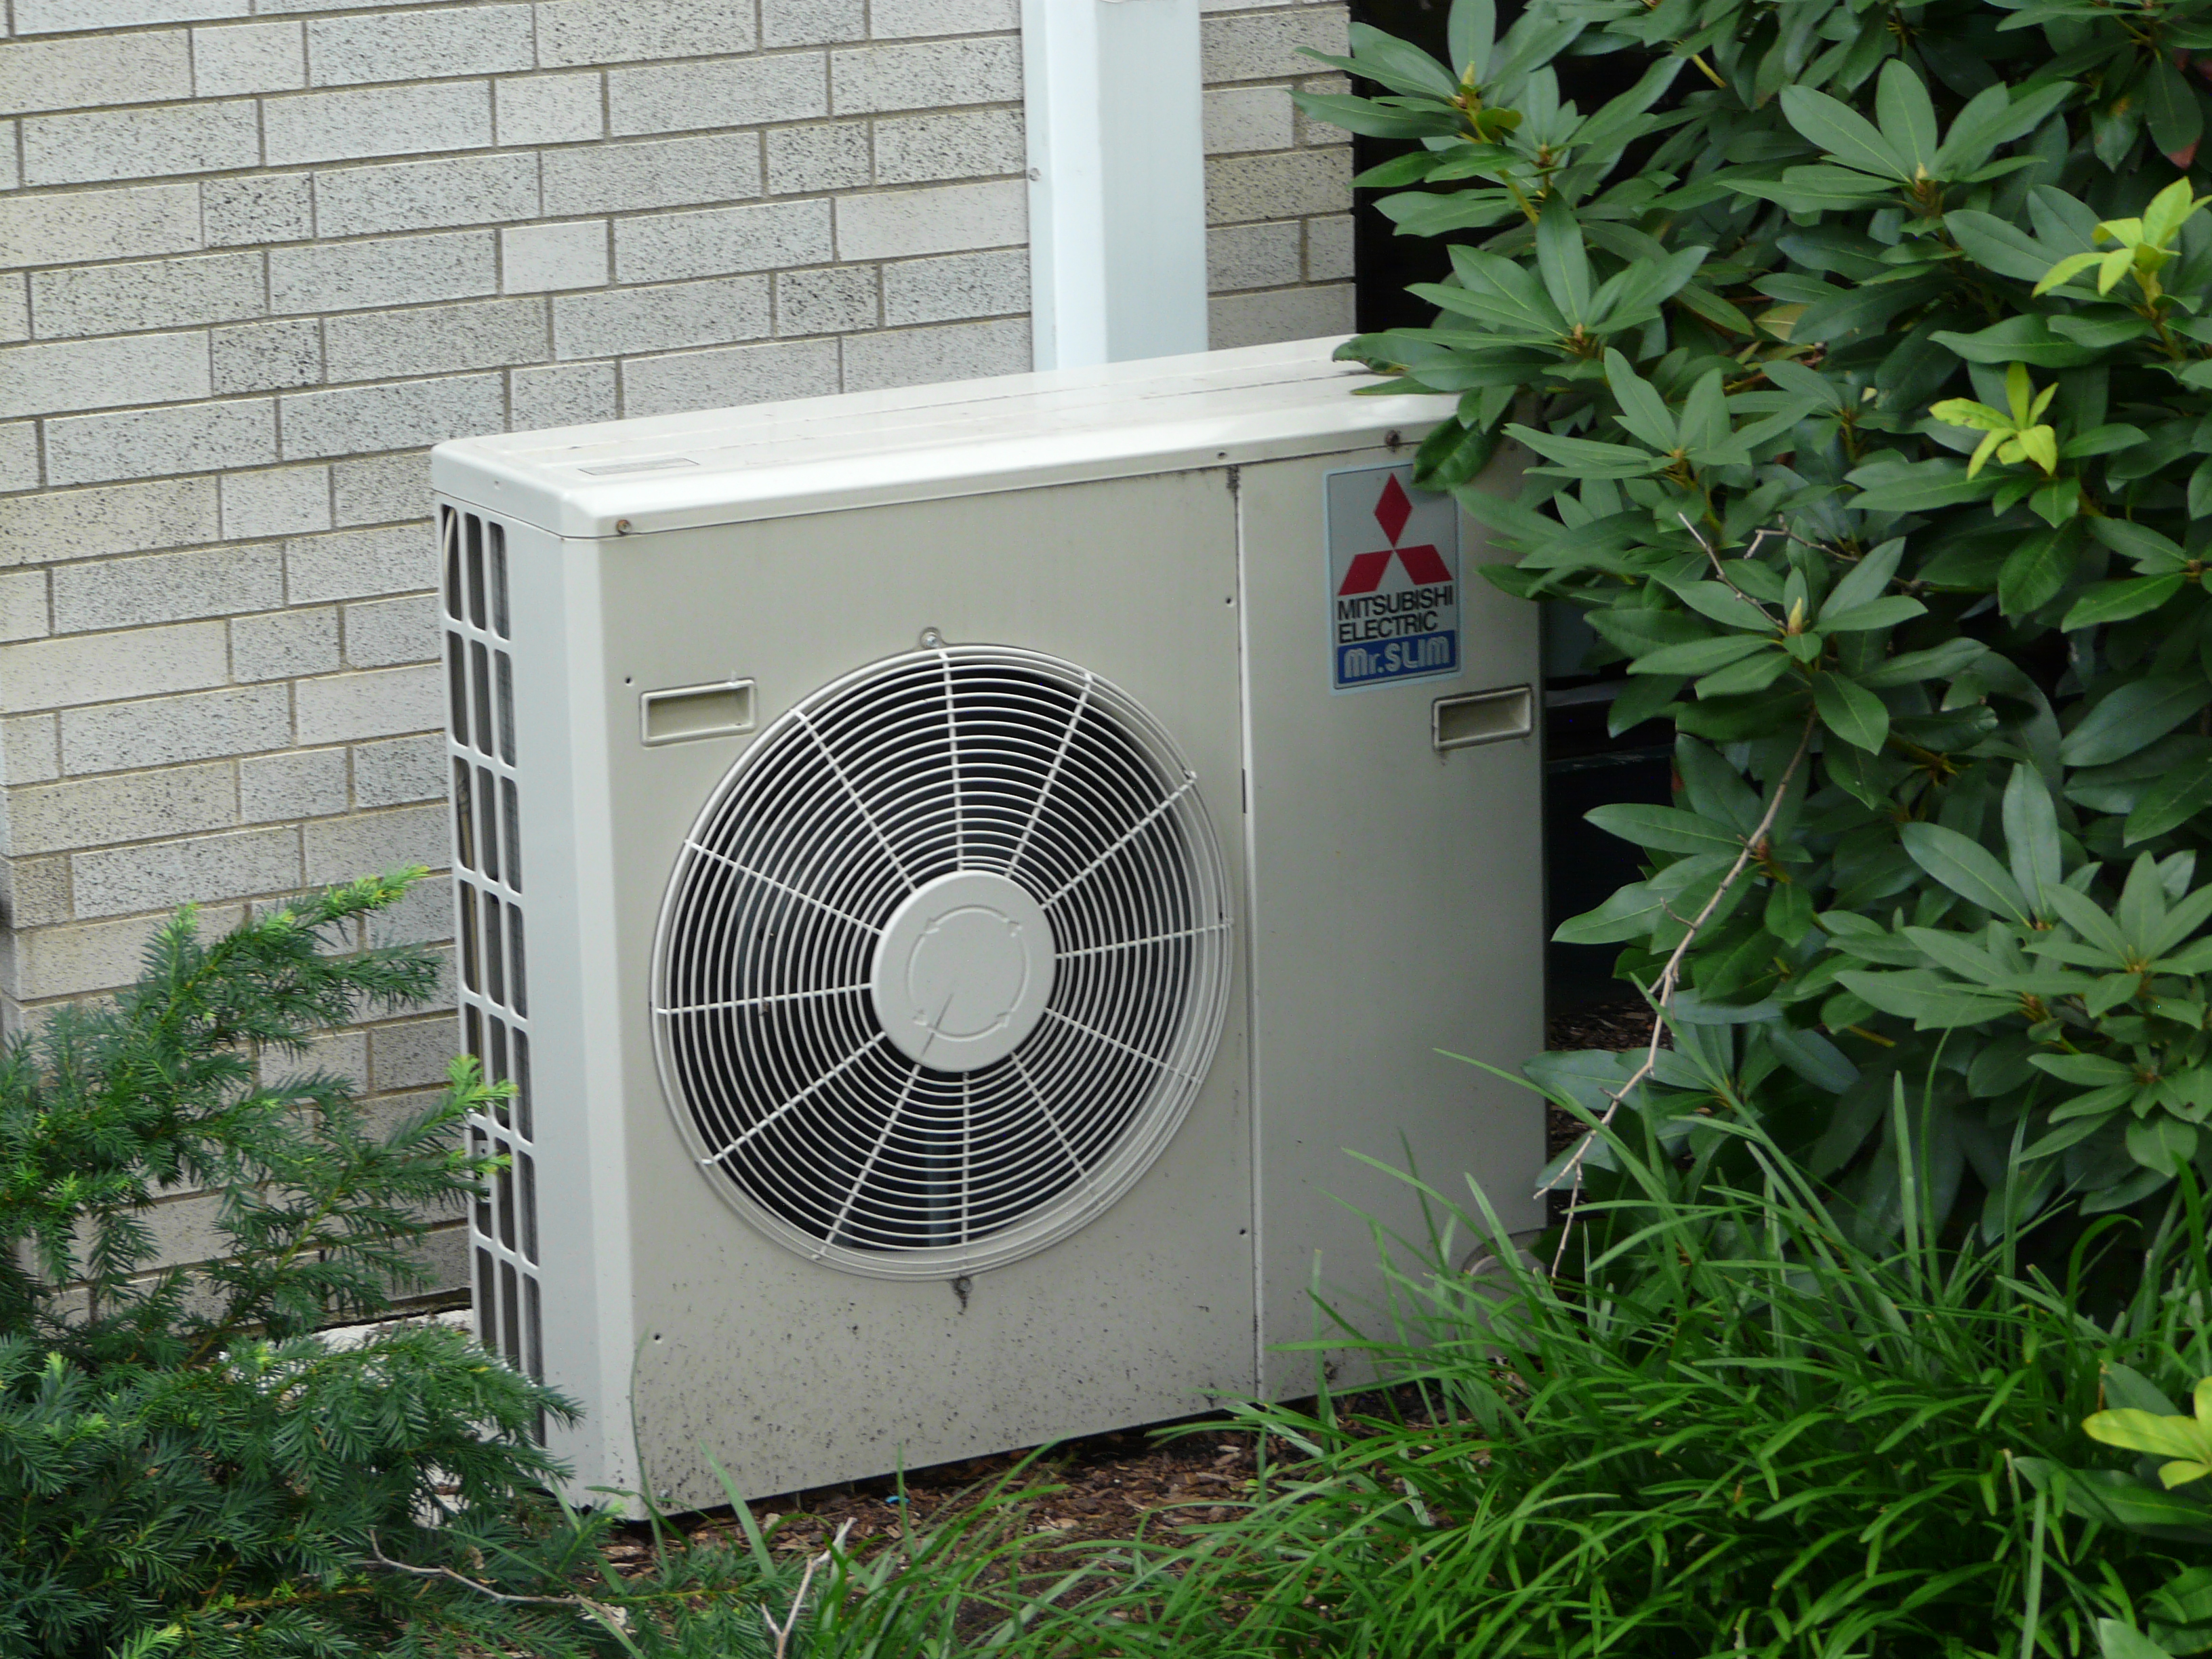 Northeastern_University_-_air_conditioner